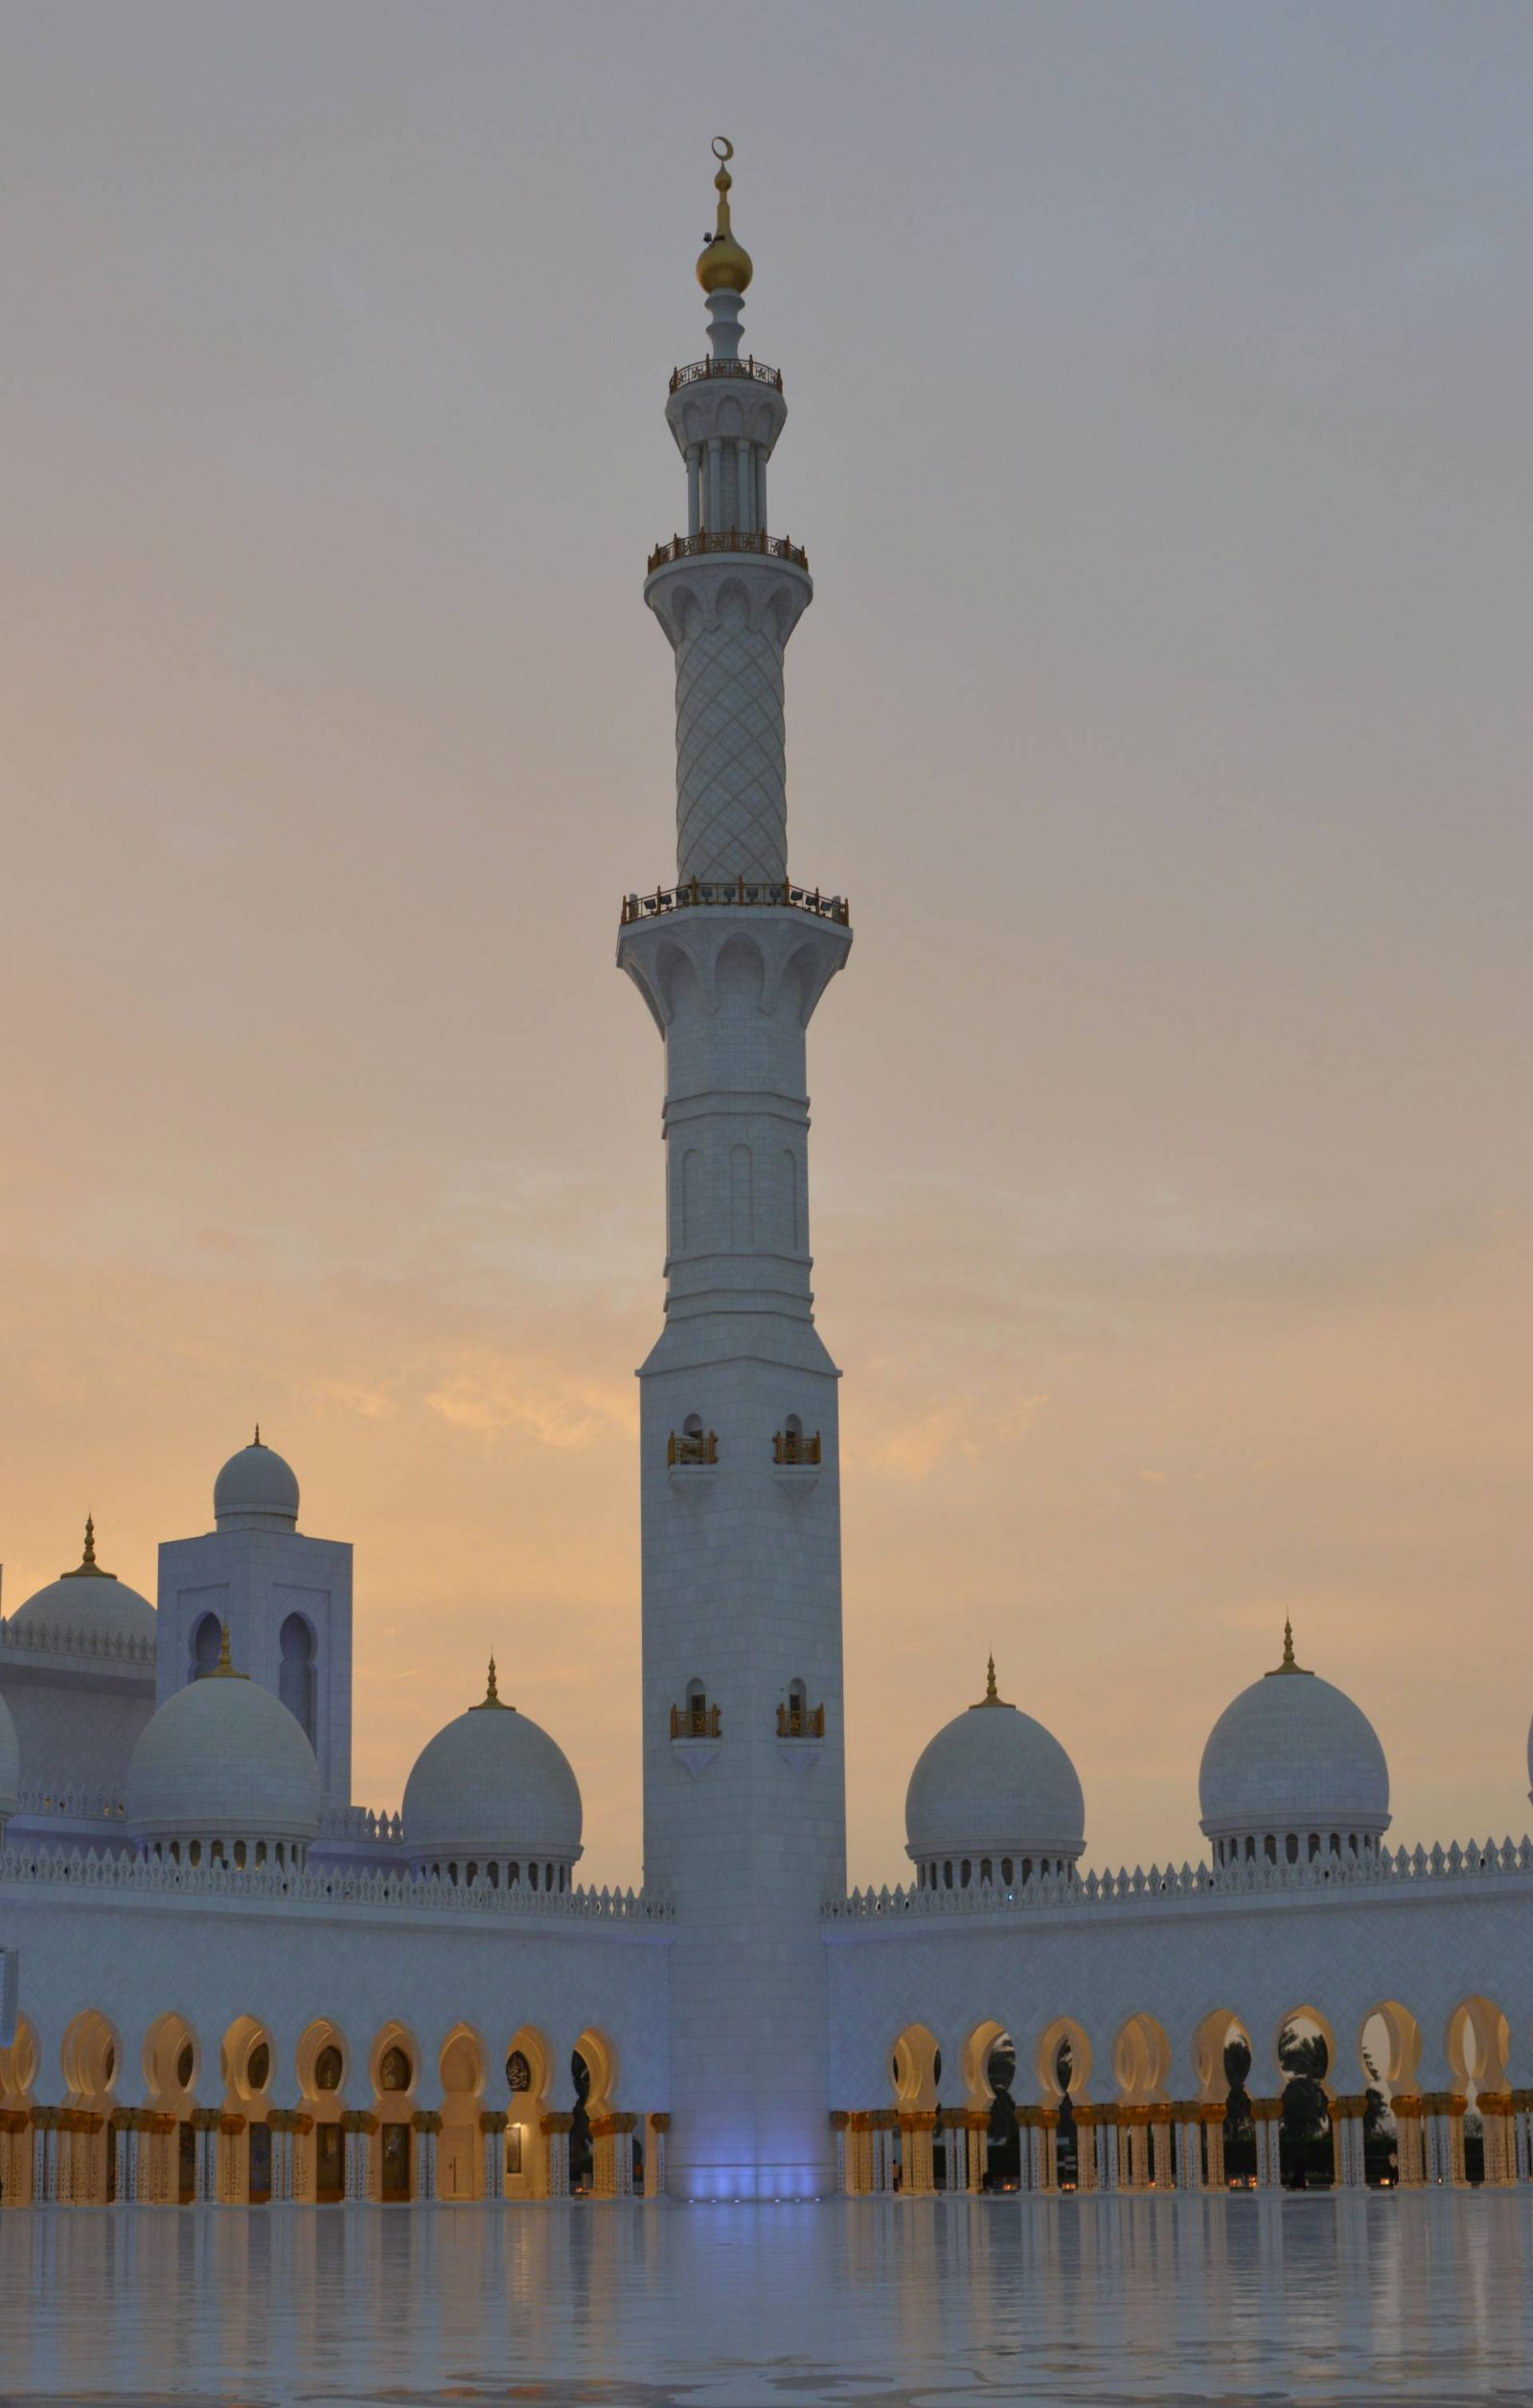 Visiting the Louvre Abu Dhabi and Sheikh Zayed Grand Mosque, sunset at Sheikh Zayed mosque, minaret